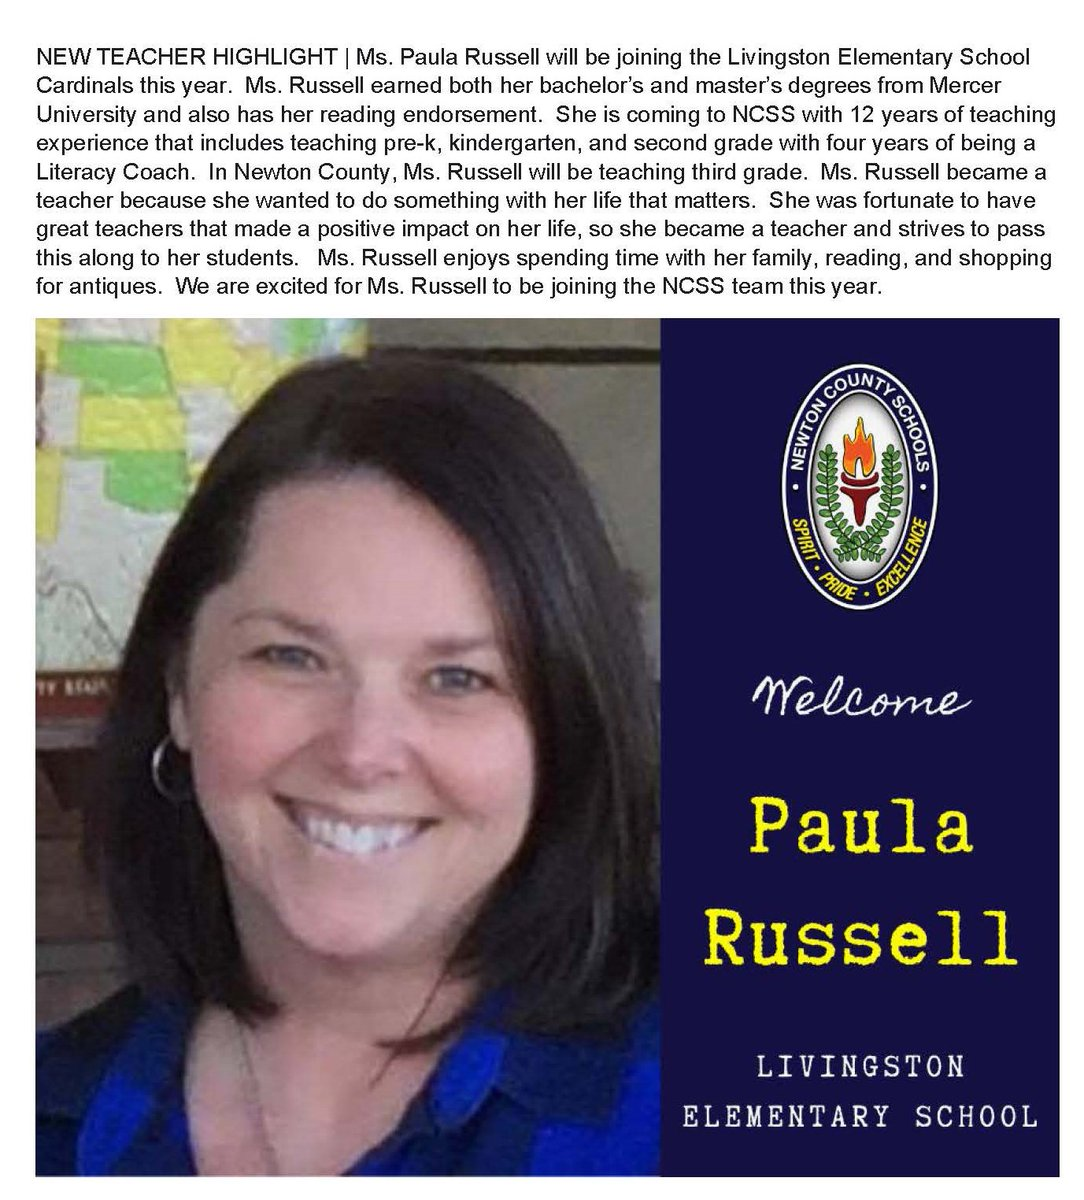 We welcome Ms. Paula Russell to the @LVESCHOOL & NCSS Team! #NCSSBeTheBest